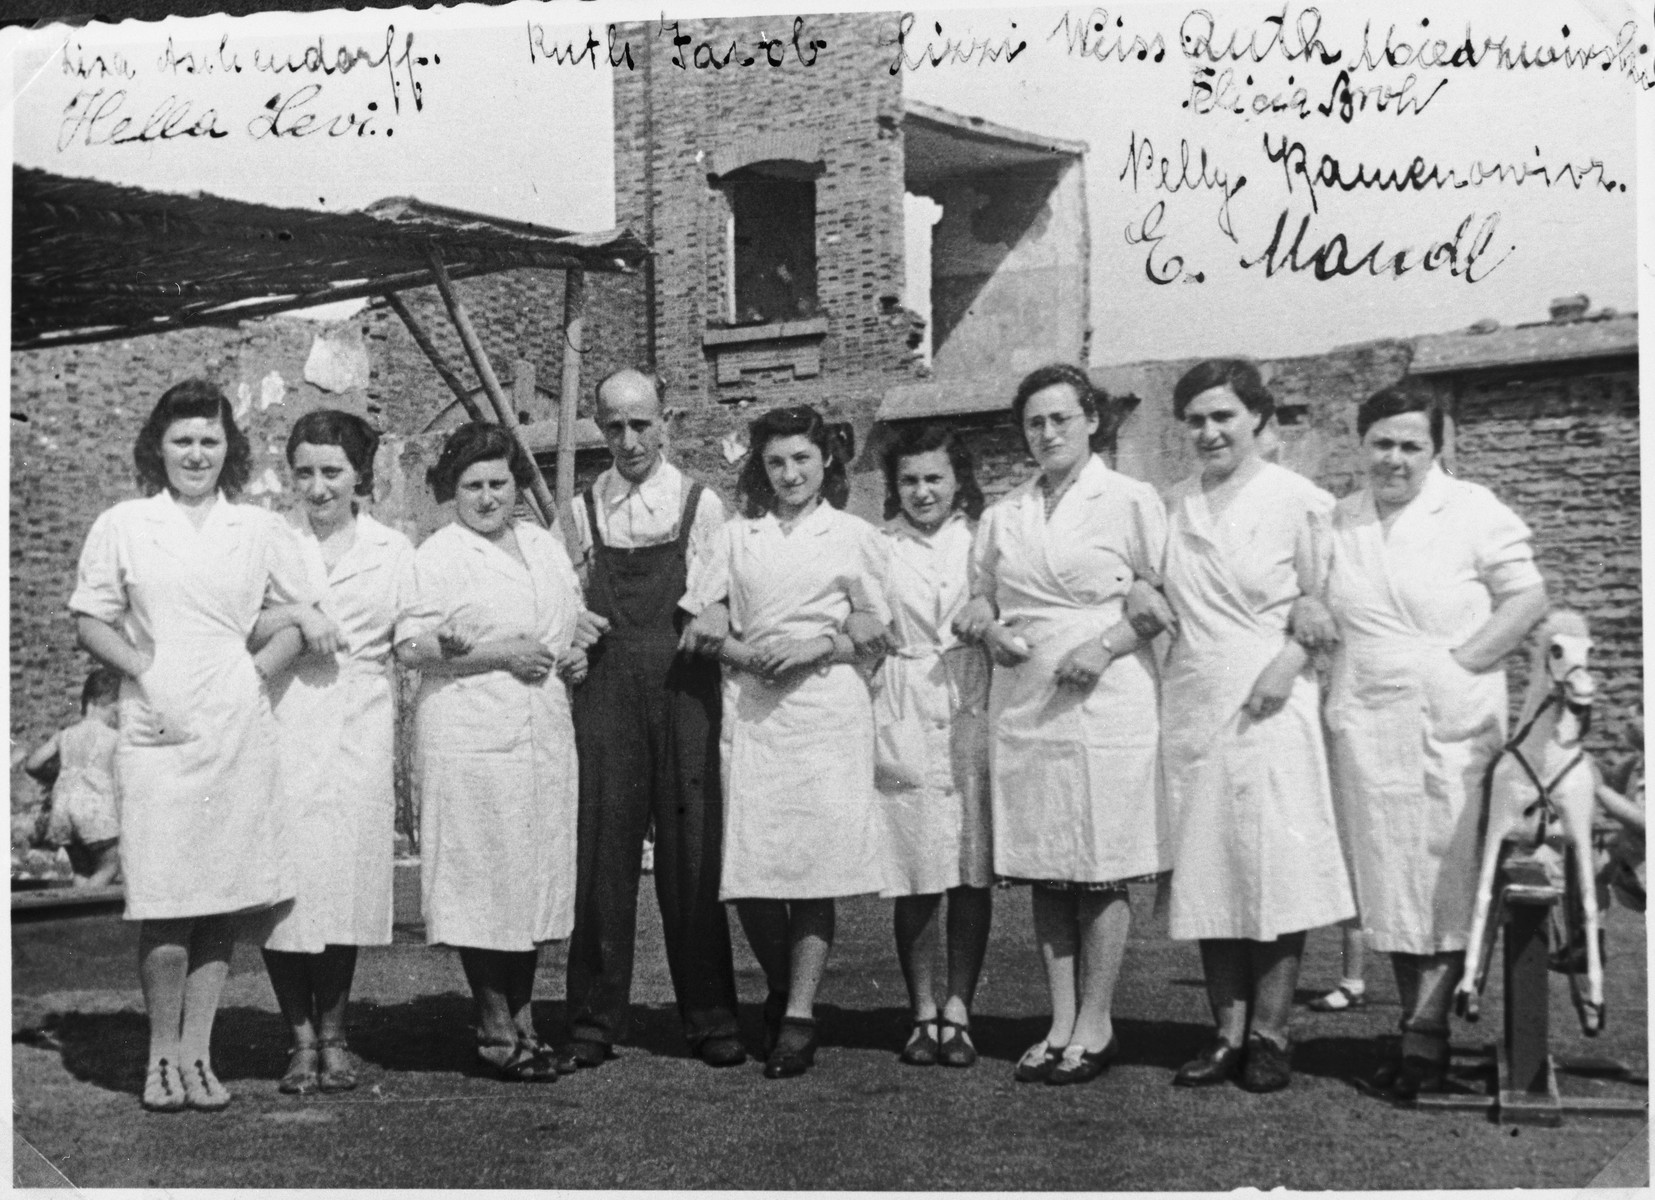 """Group portrait of members of the International Committee for European Immigrants in Shanghai who staff the I.C. creche for Jewish refugees.  Among those pictured is Lotte Guttmann.  One photograph from the International Committee album, """"Introducing the I.C. Staff"""" presented to I.C. secretary Paul Komor on August 7, 1941 in Shanghai."""